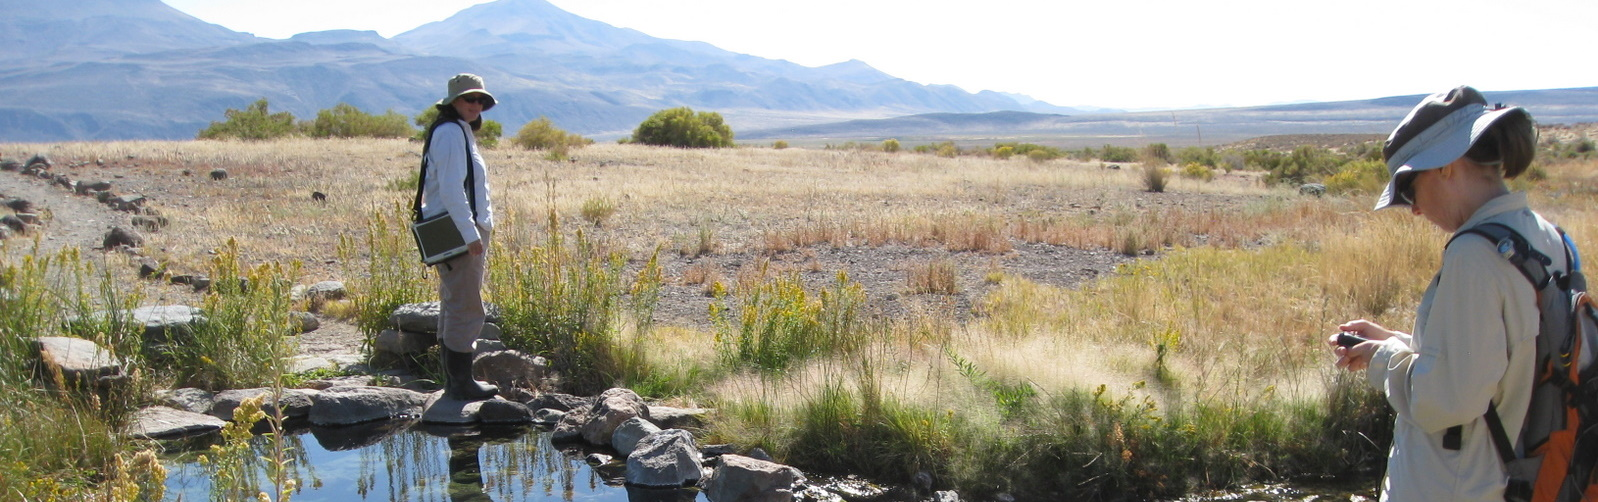 Soldier Meadow Hot Springs, by Kim Williams, NNHP